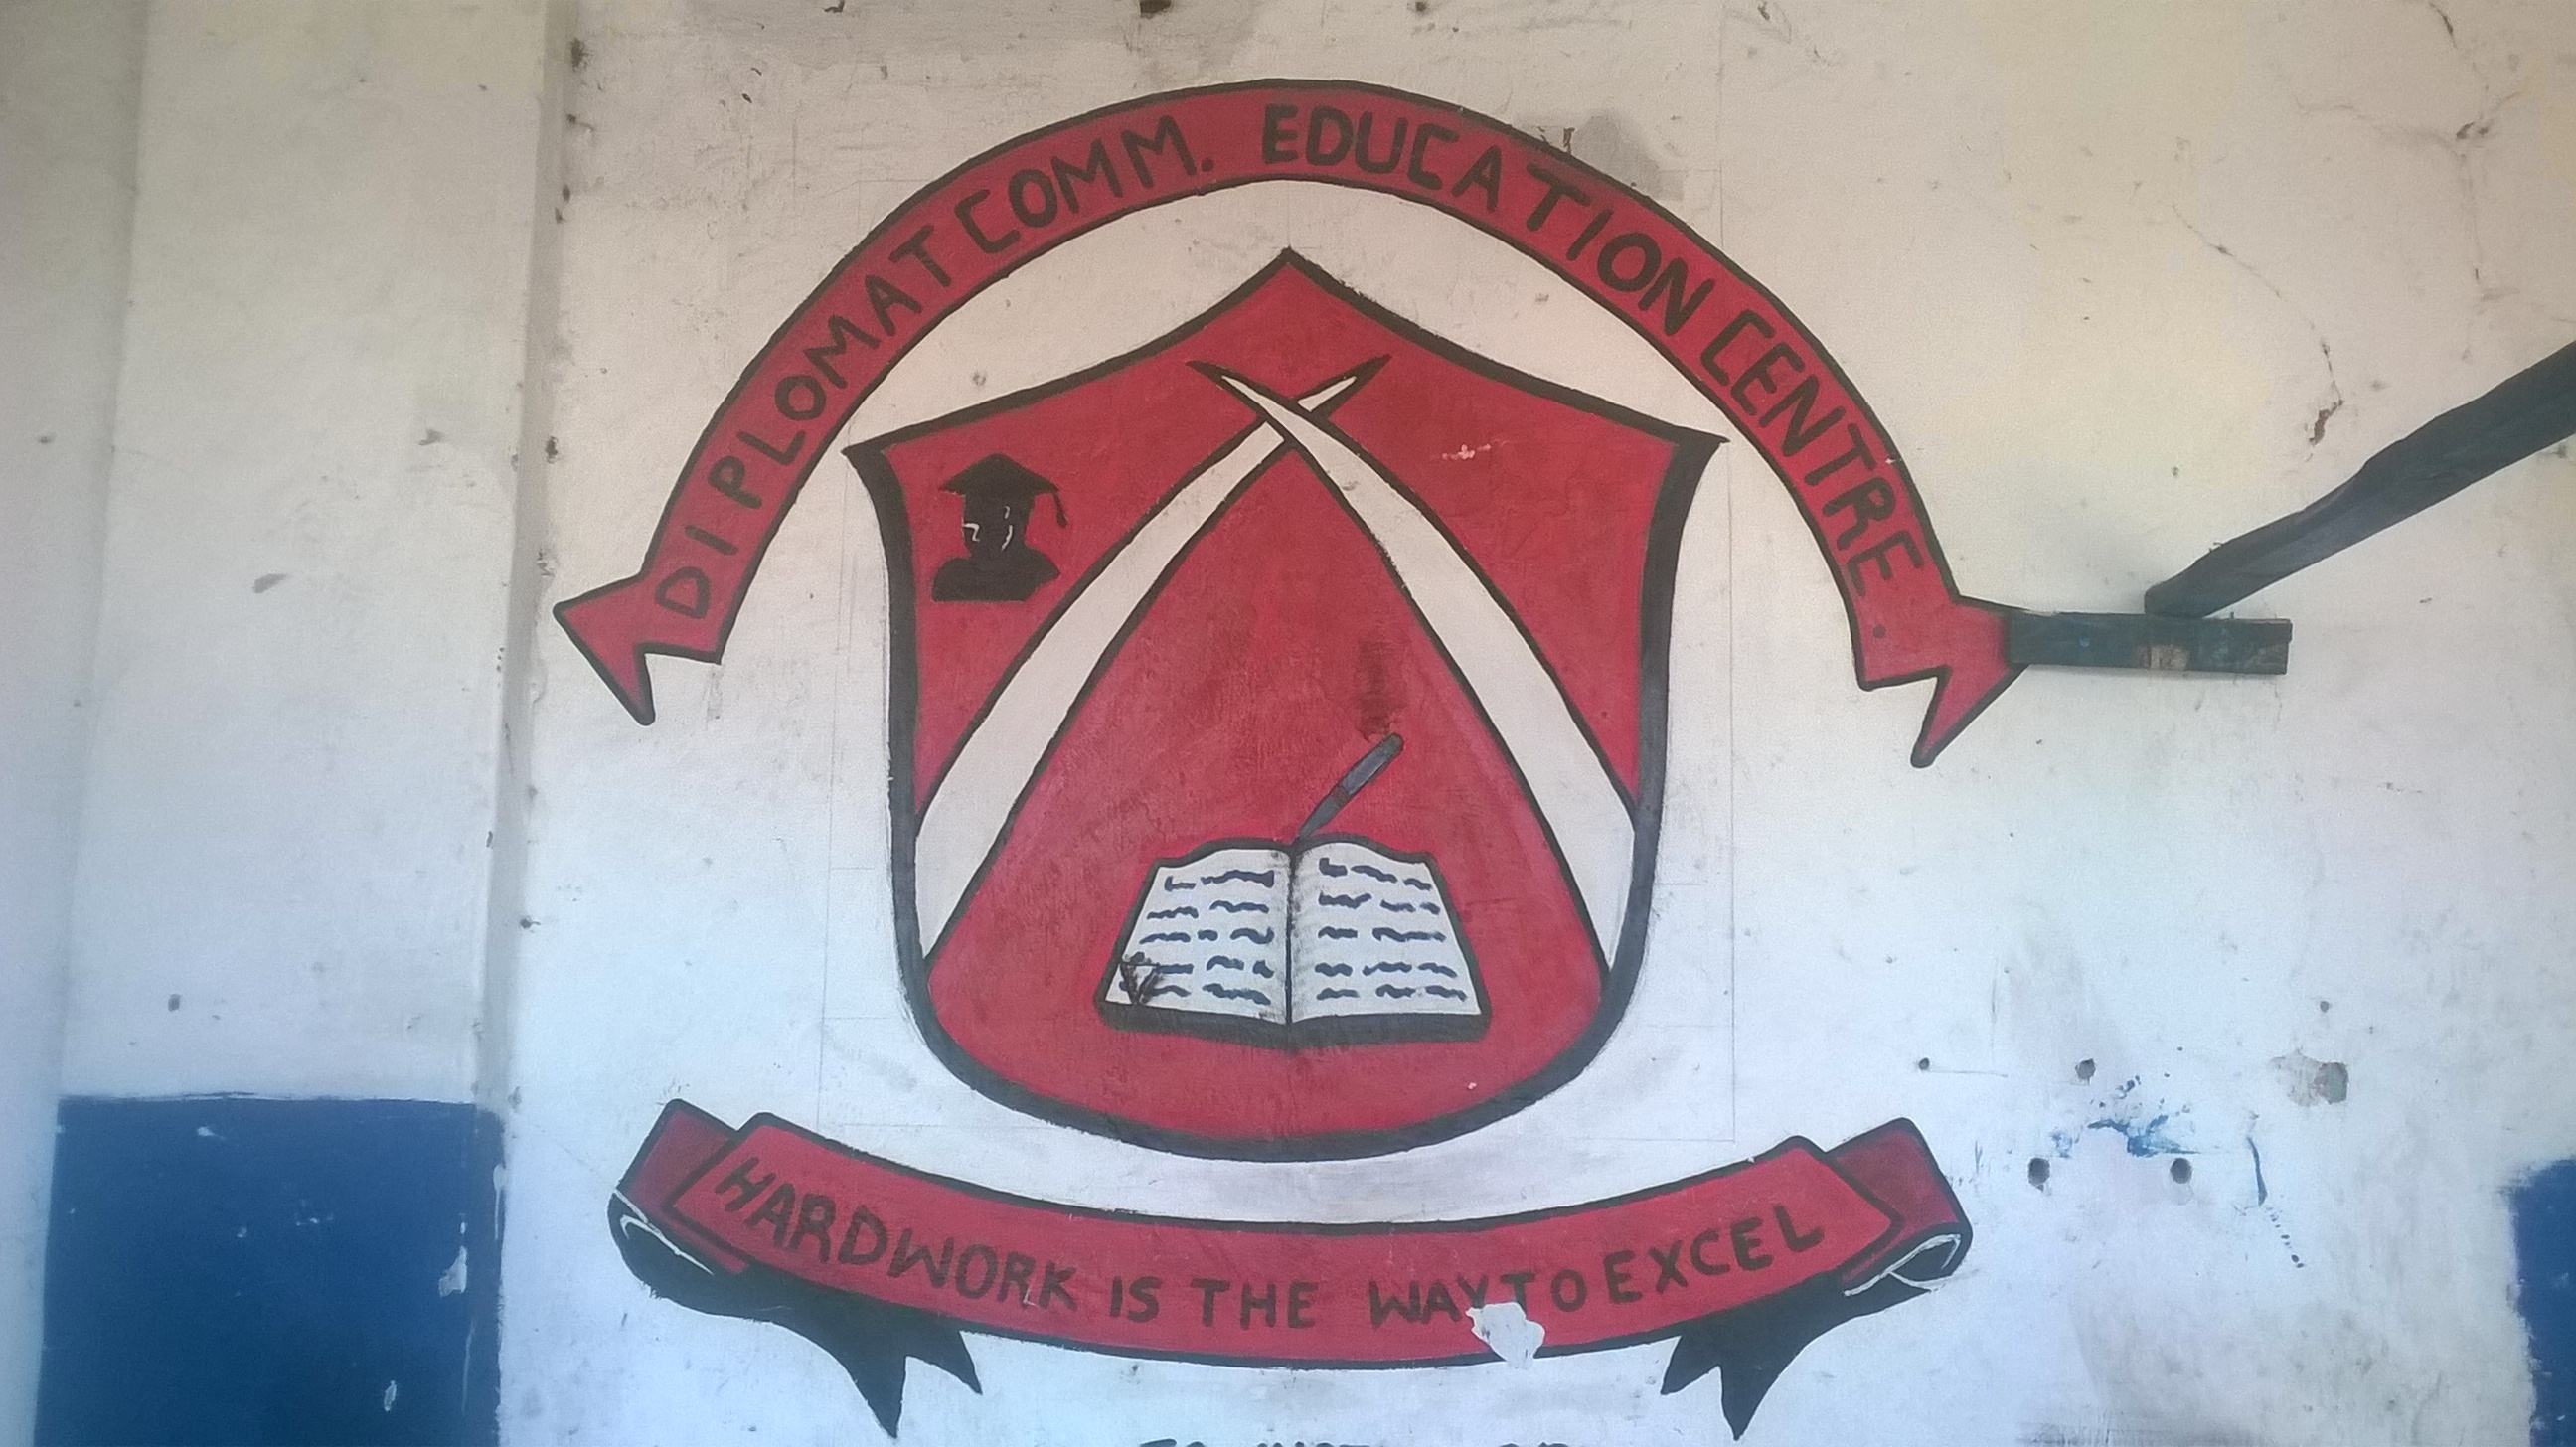 Diplomat Community Education Centre logo